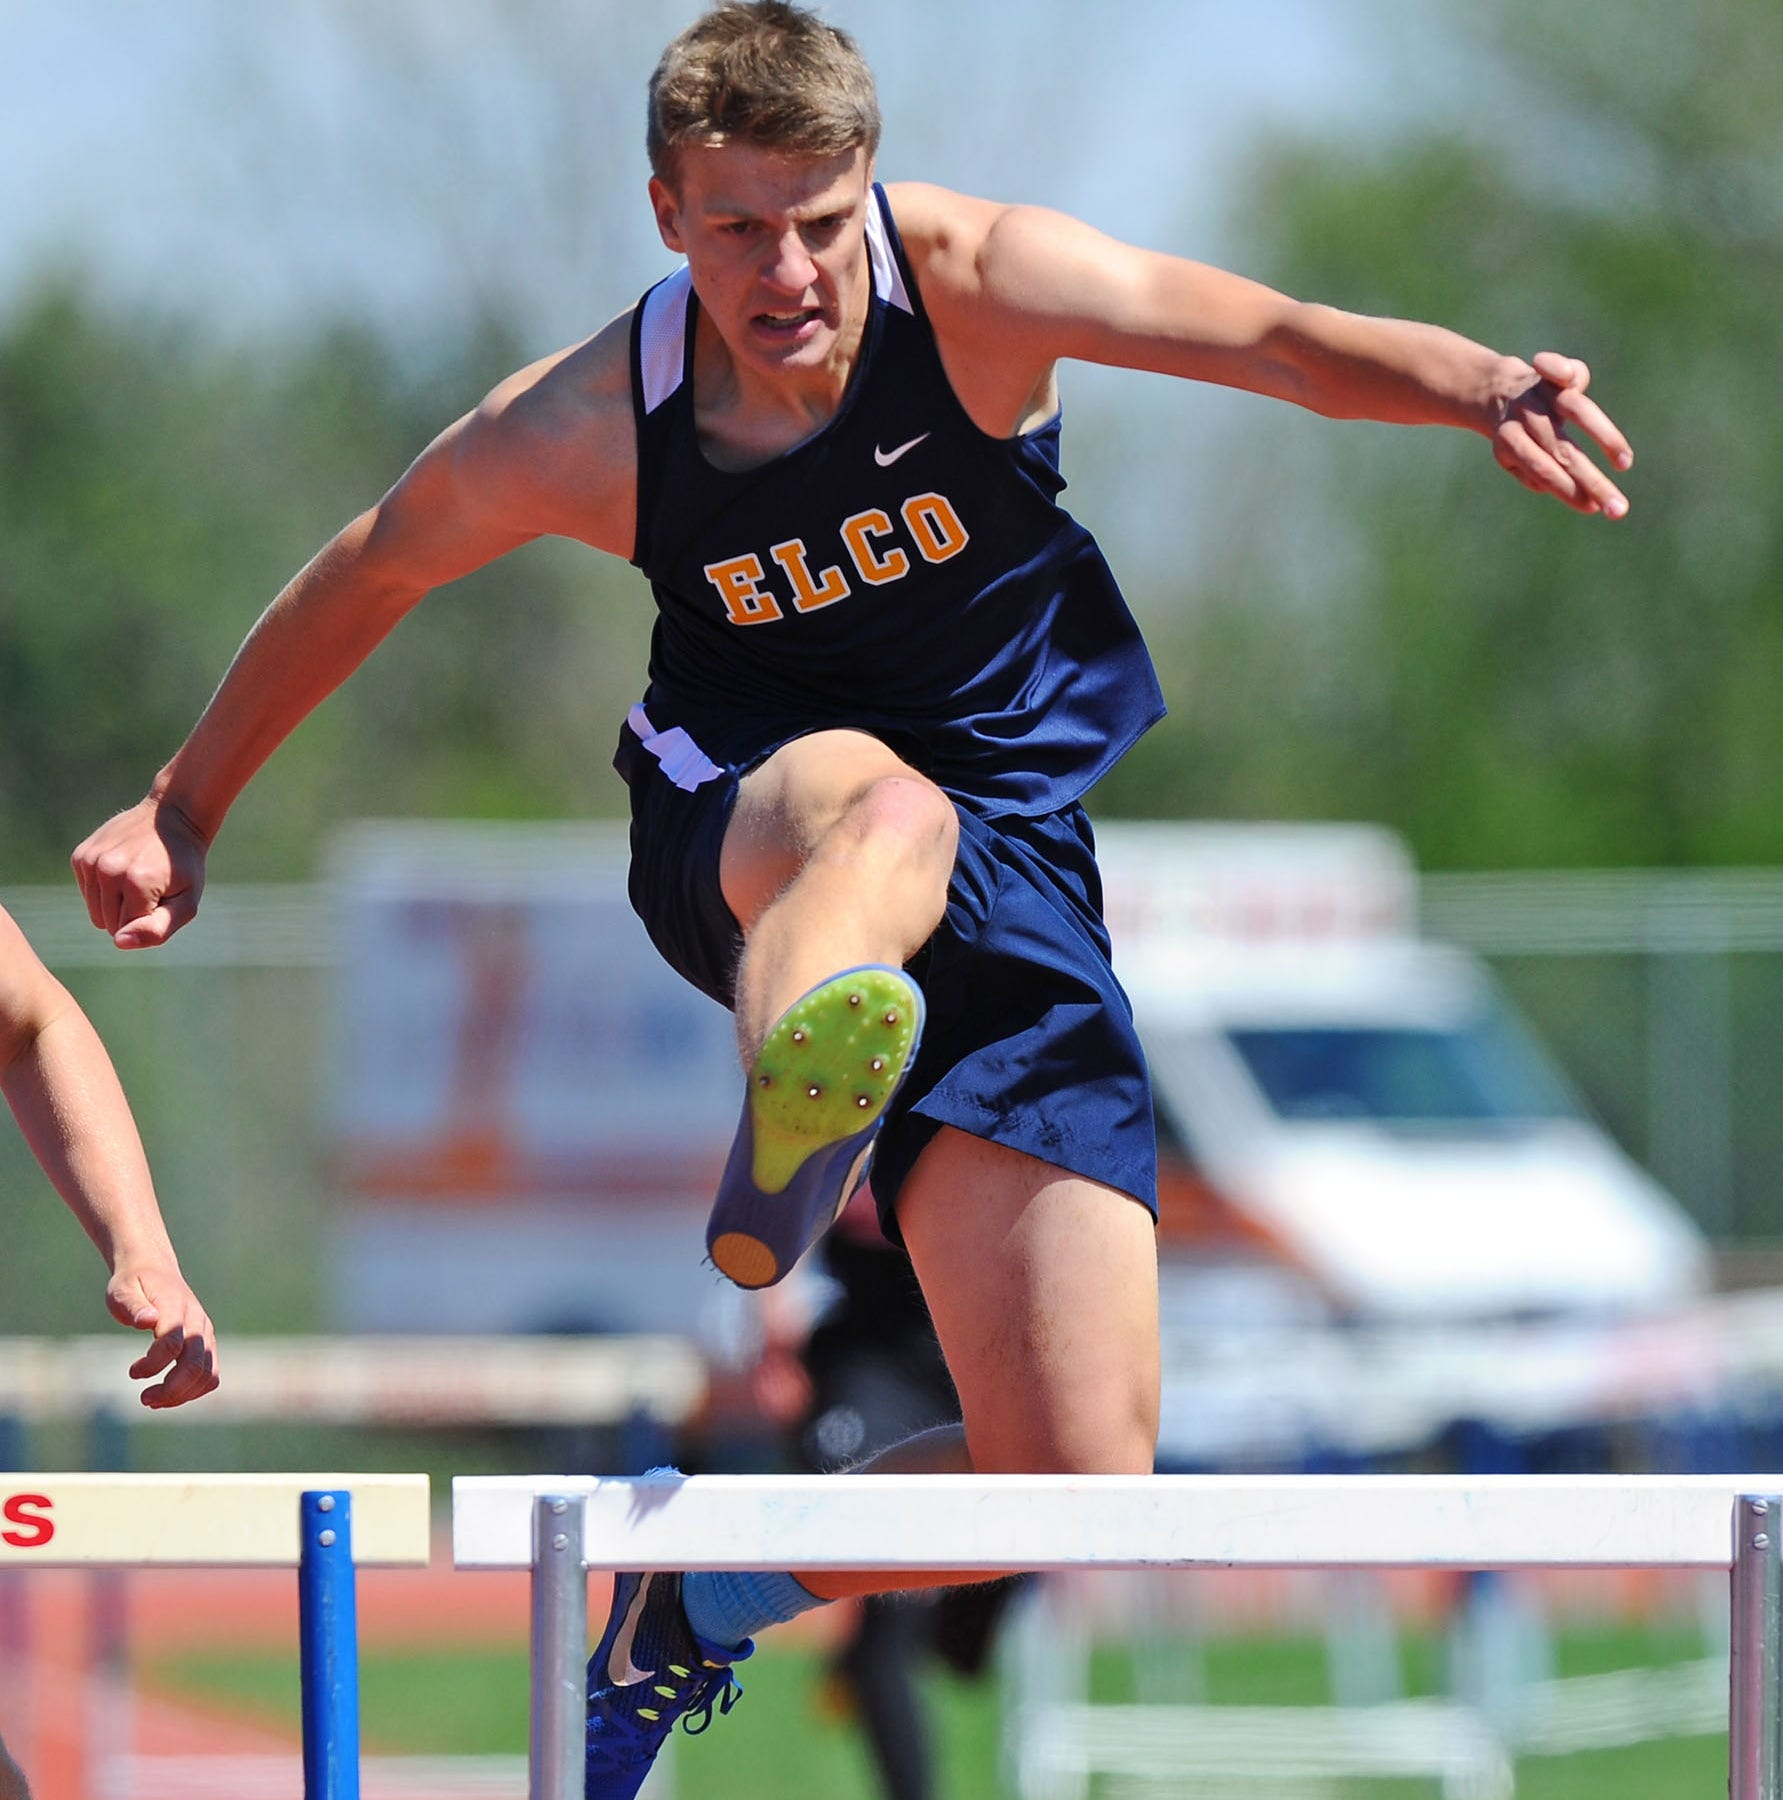 Elco track and field teams enjoyed sweeping success in run to section titles